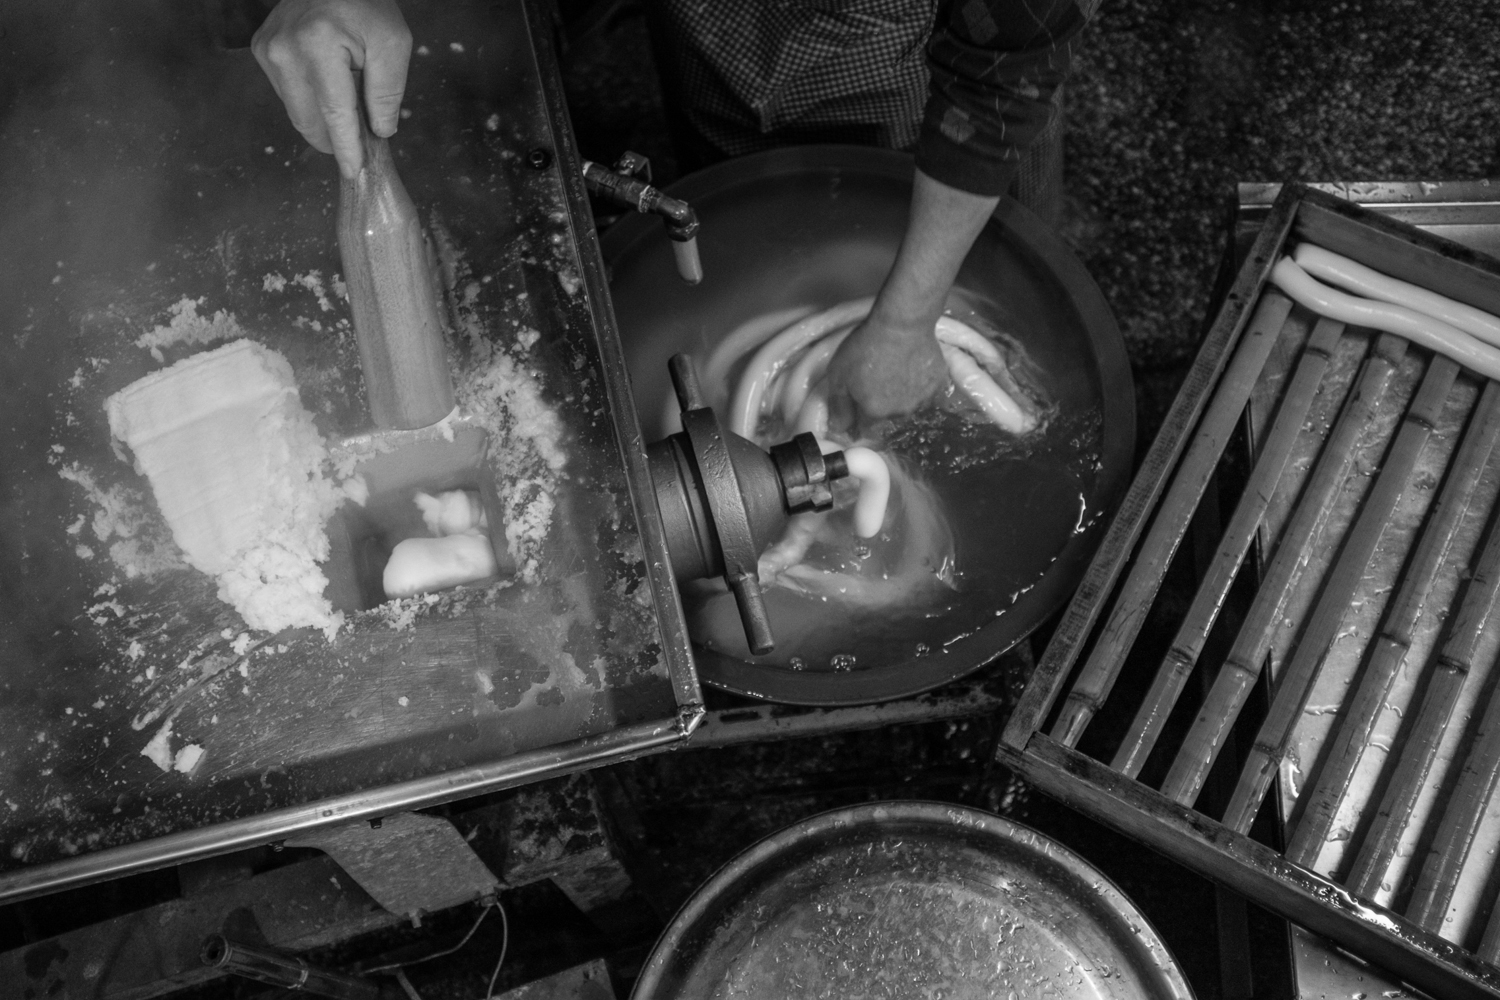 Forcing a block of steamed rice flour through the extruder into water.